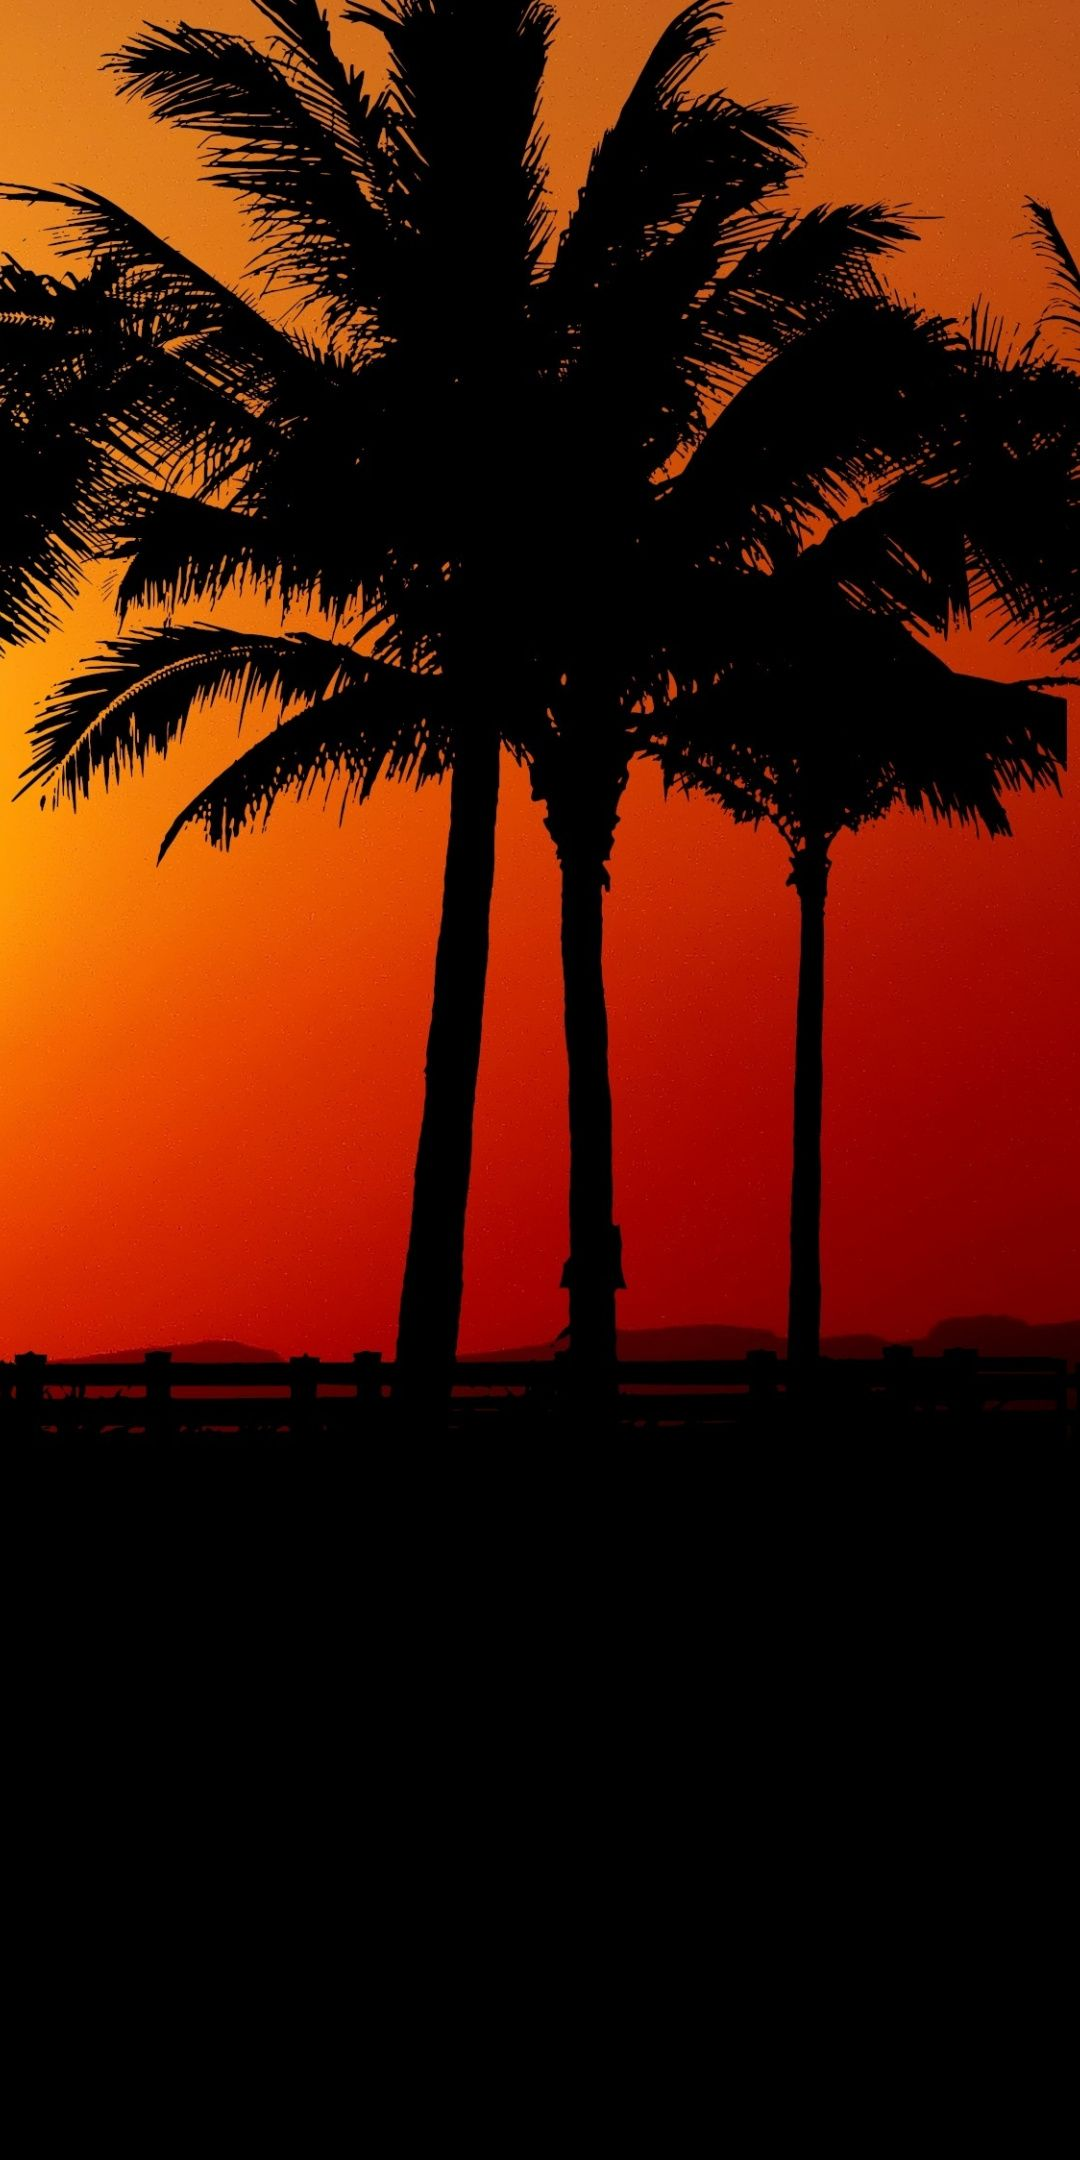 Sunset Palm Tree Silhouette 1080x2160 Wallpaper Palm